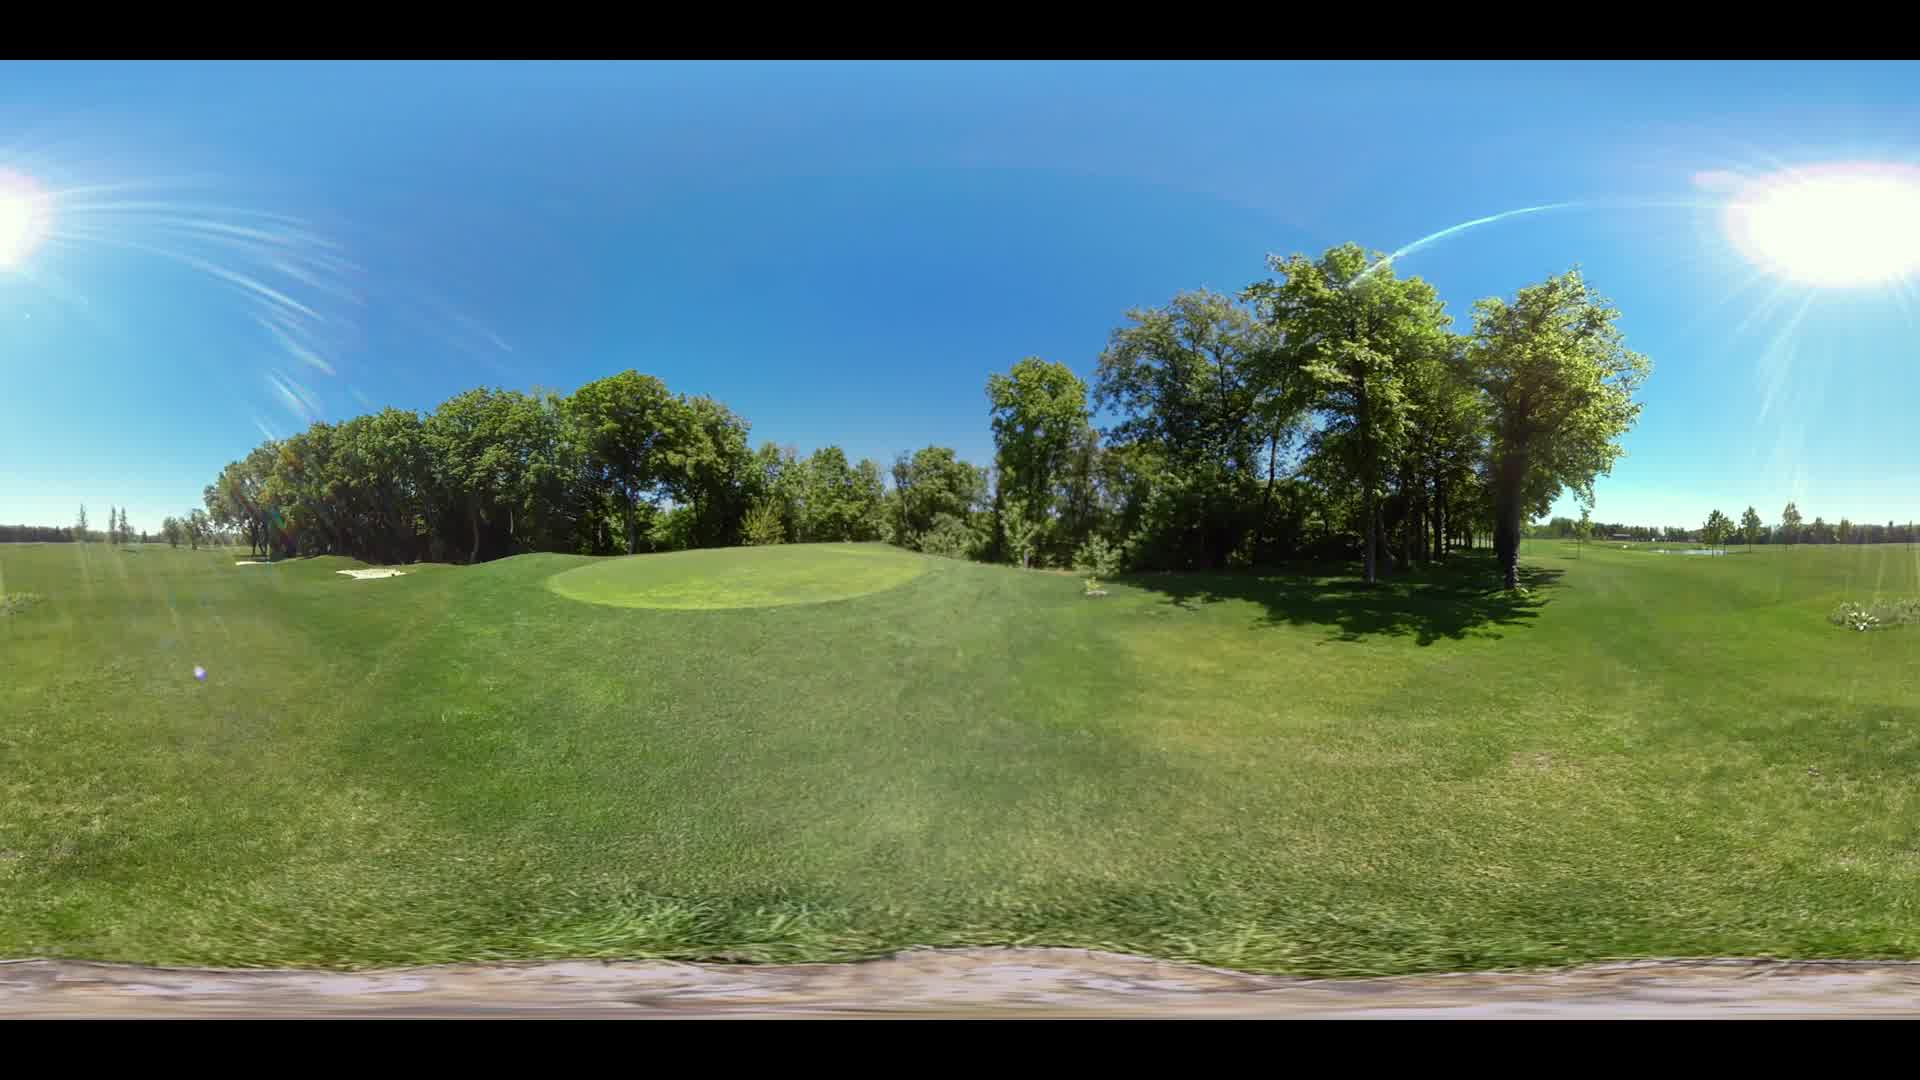 Golf grass landscape 360 degree panorama. 360 view of landscape grass sky. Summer golf lawn landscape. Green field and blue sky. 360 view of green golf course